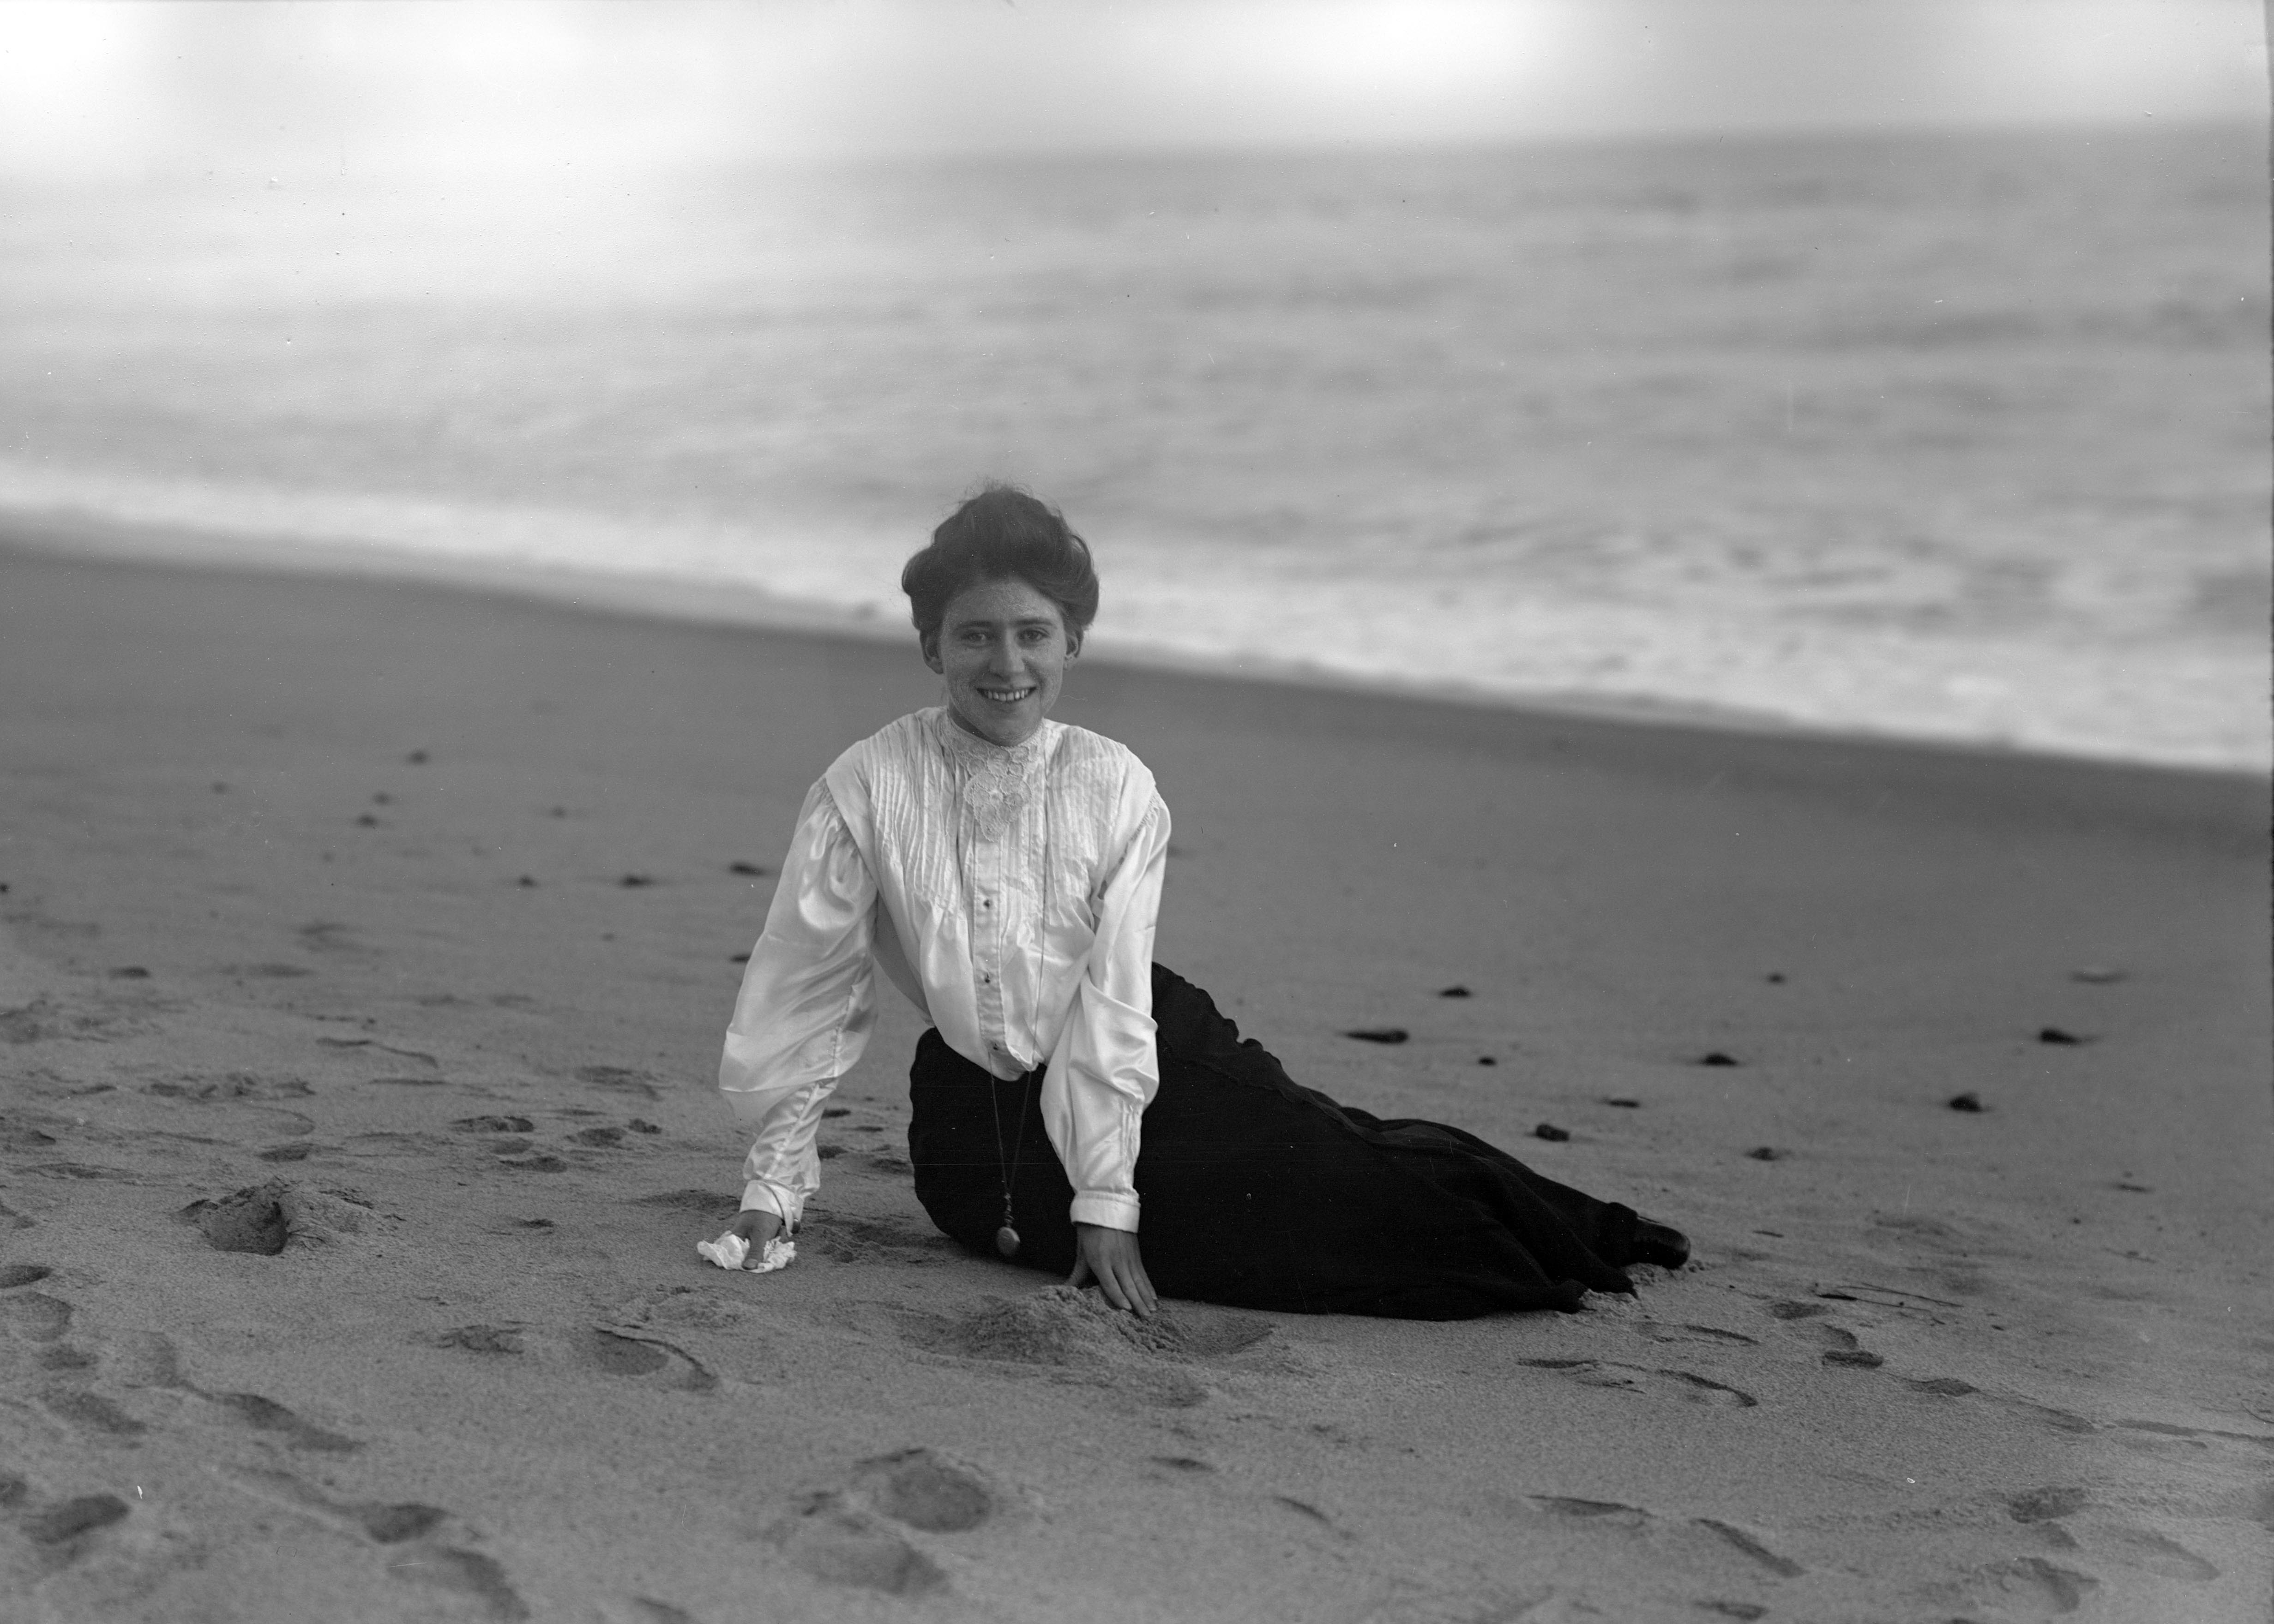 Nellie B. (Irene Finley) on the seashore circa 1905.  OHS Research Library, Org. Lot 369, Finley C0223.